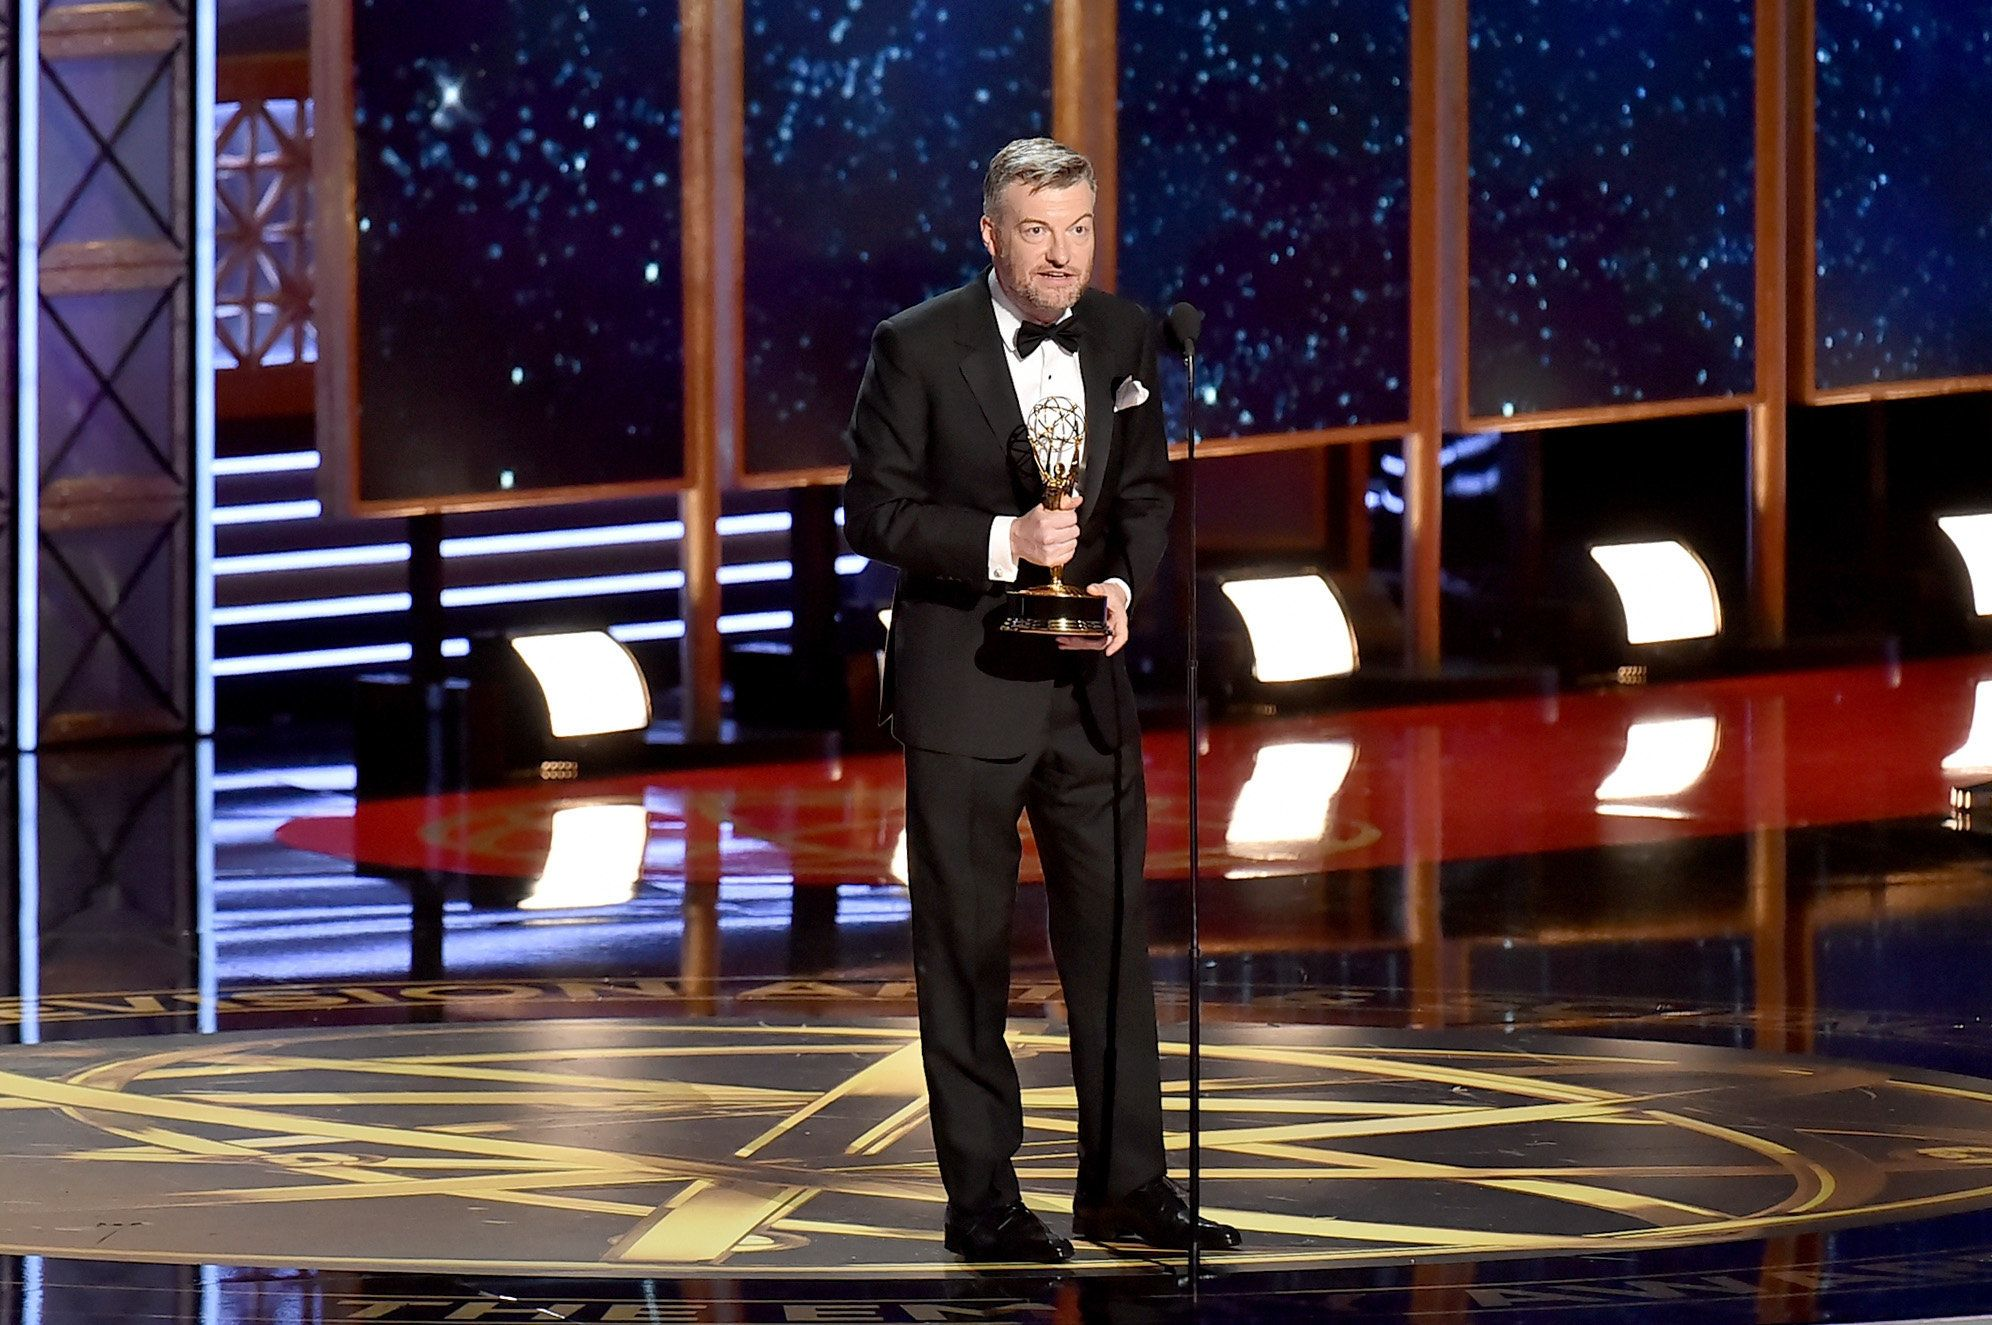 Emmy Wins For Charlie Brooker, Veep, Saturday Night Live, John Oliver